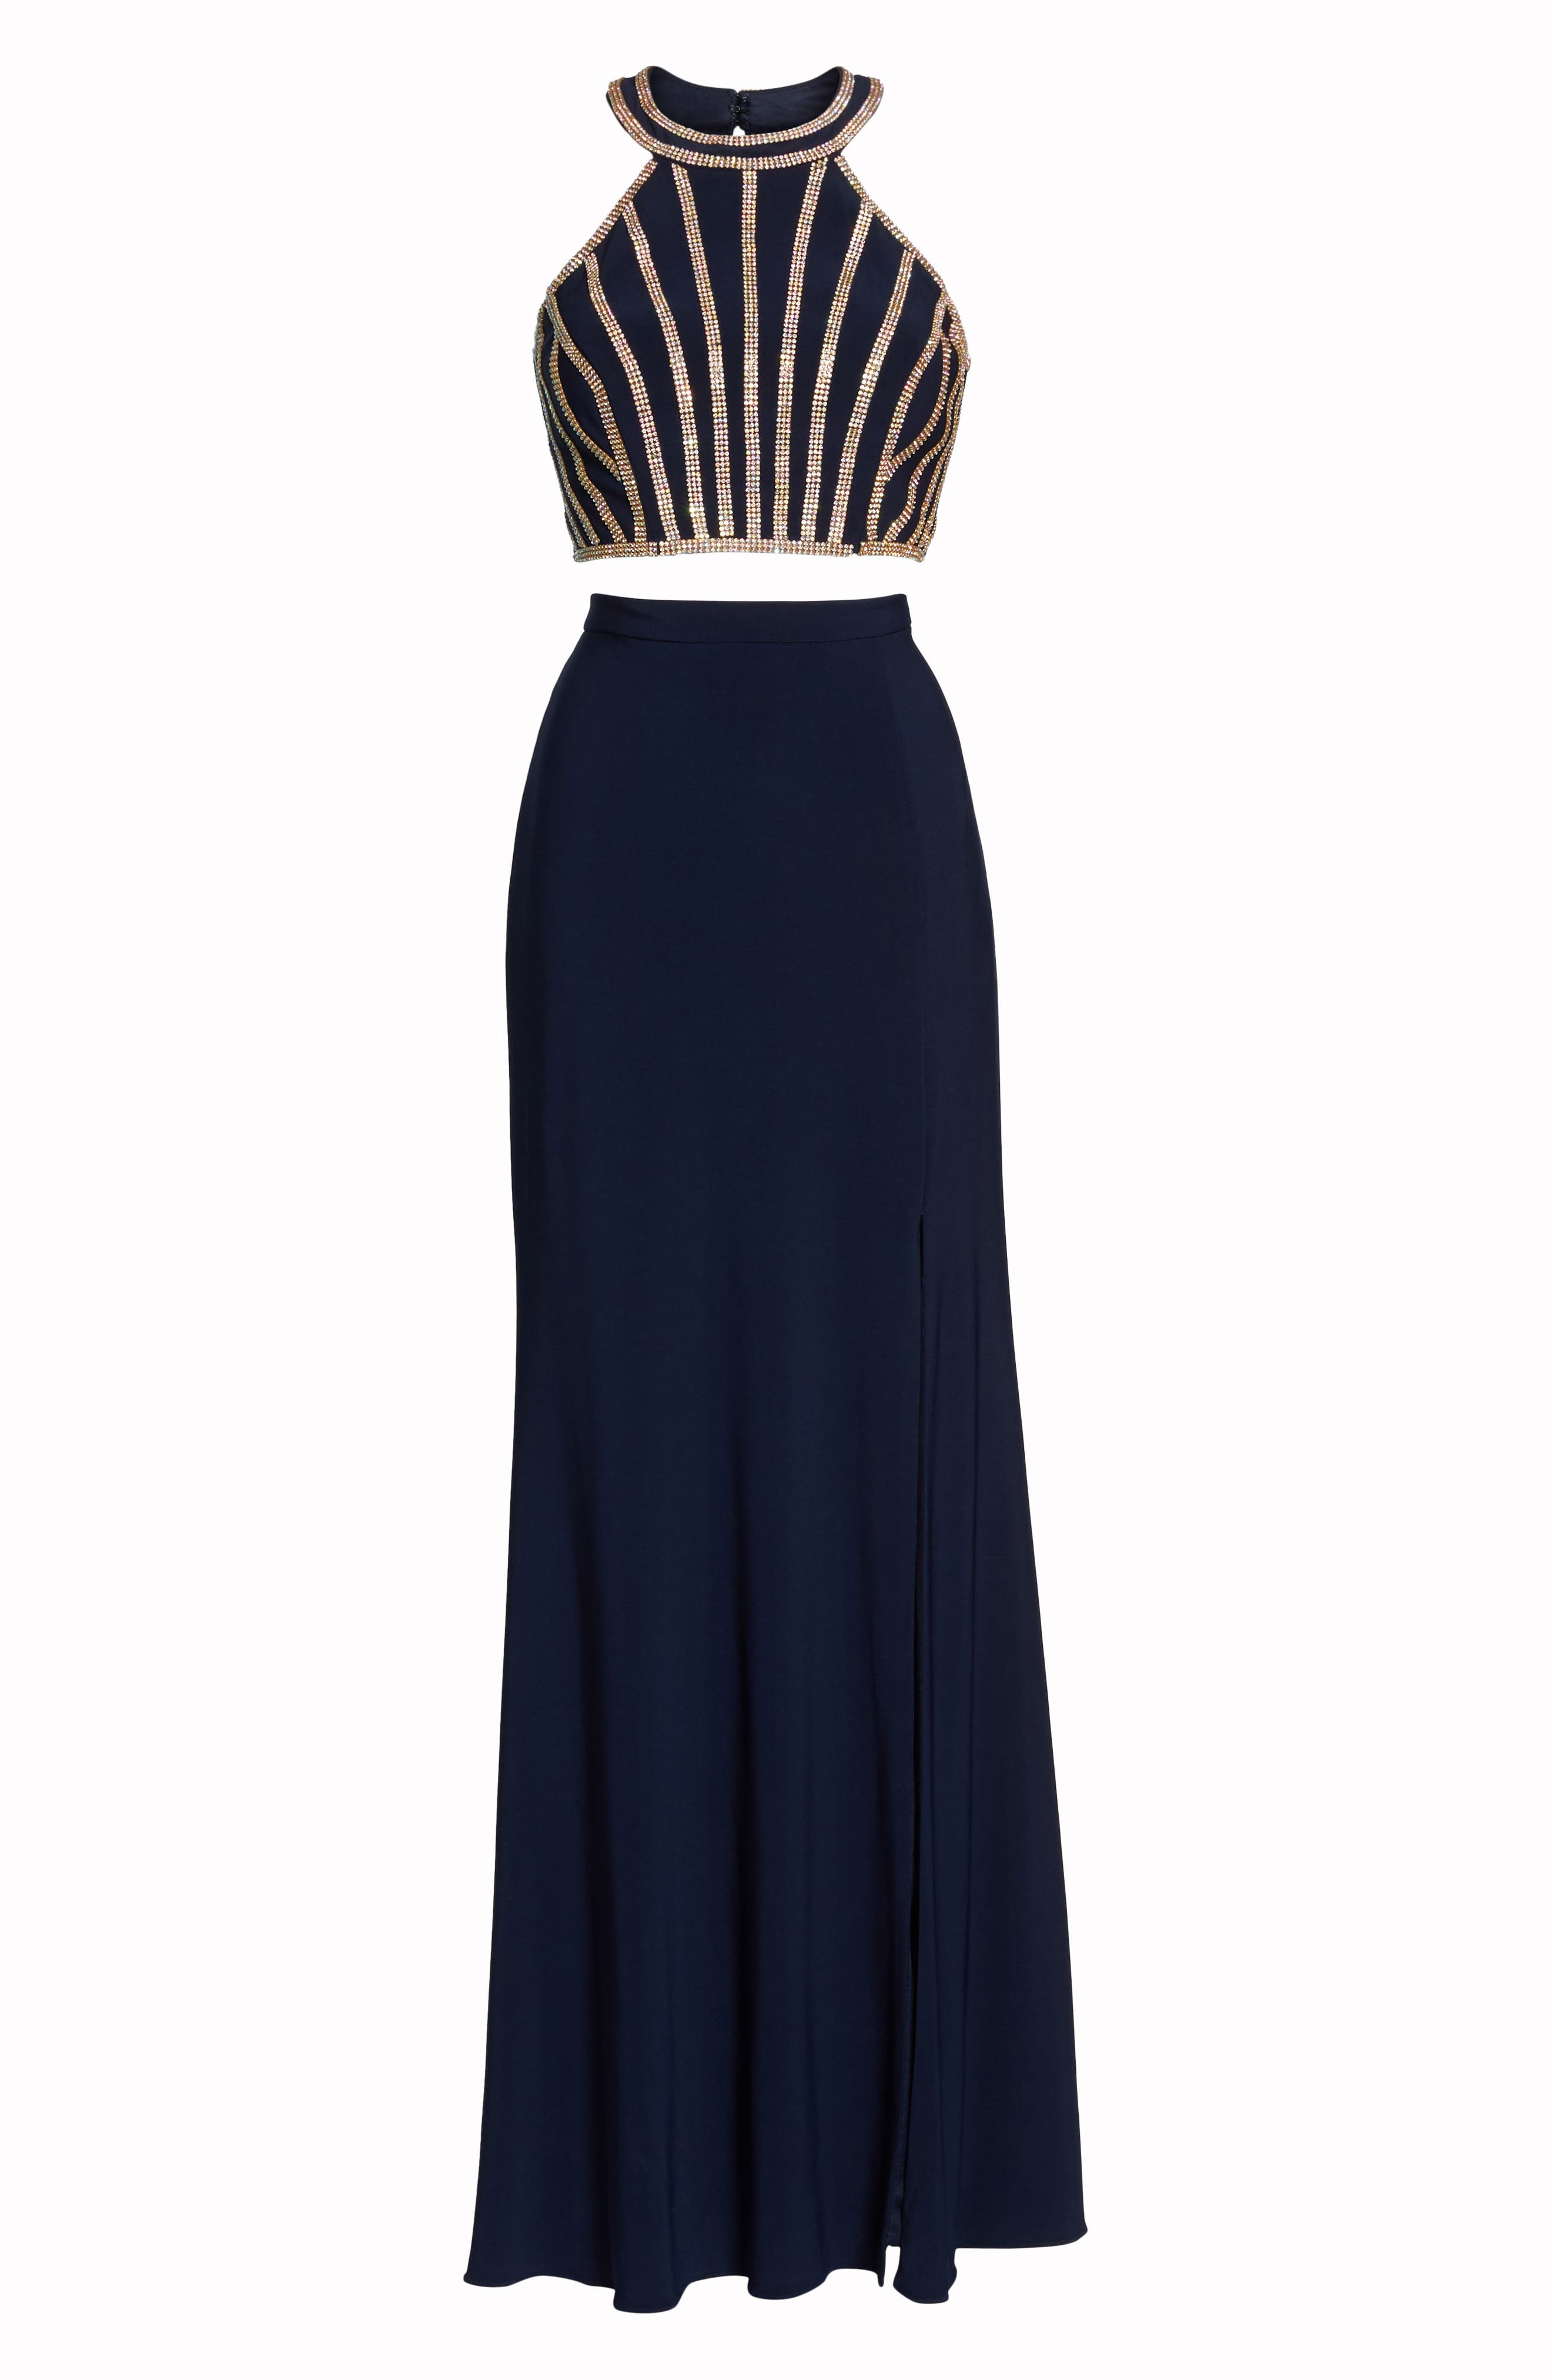 Beaded Top Two-Piece Dress,                             Alternate thumbnail 6, color,                             Navy/ Gold